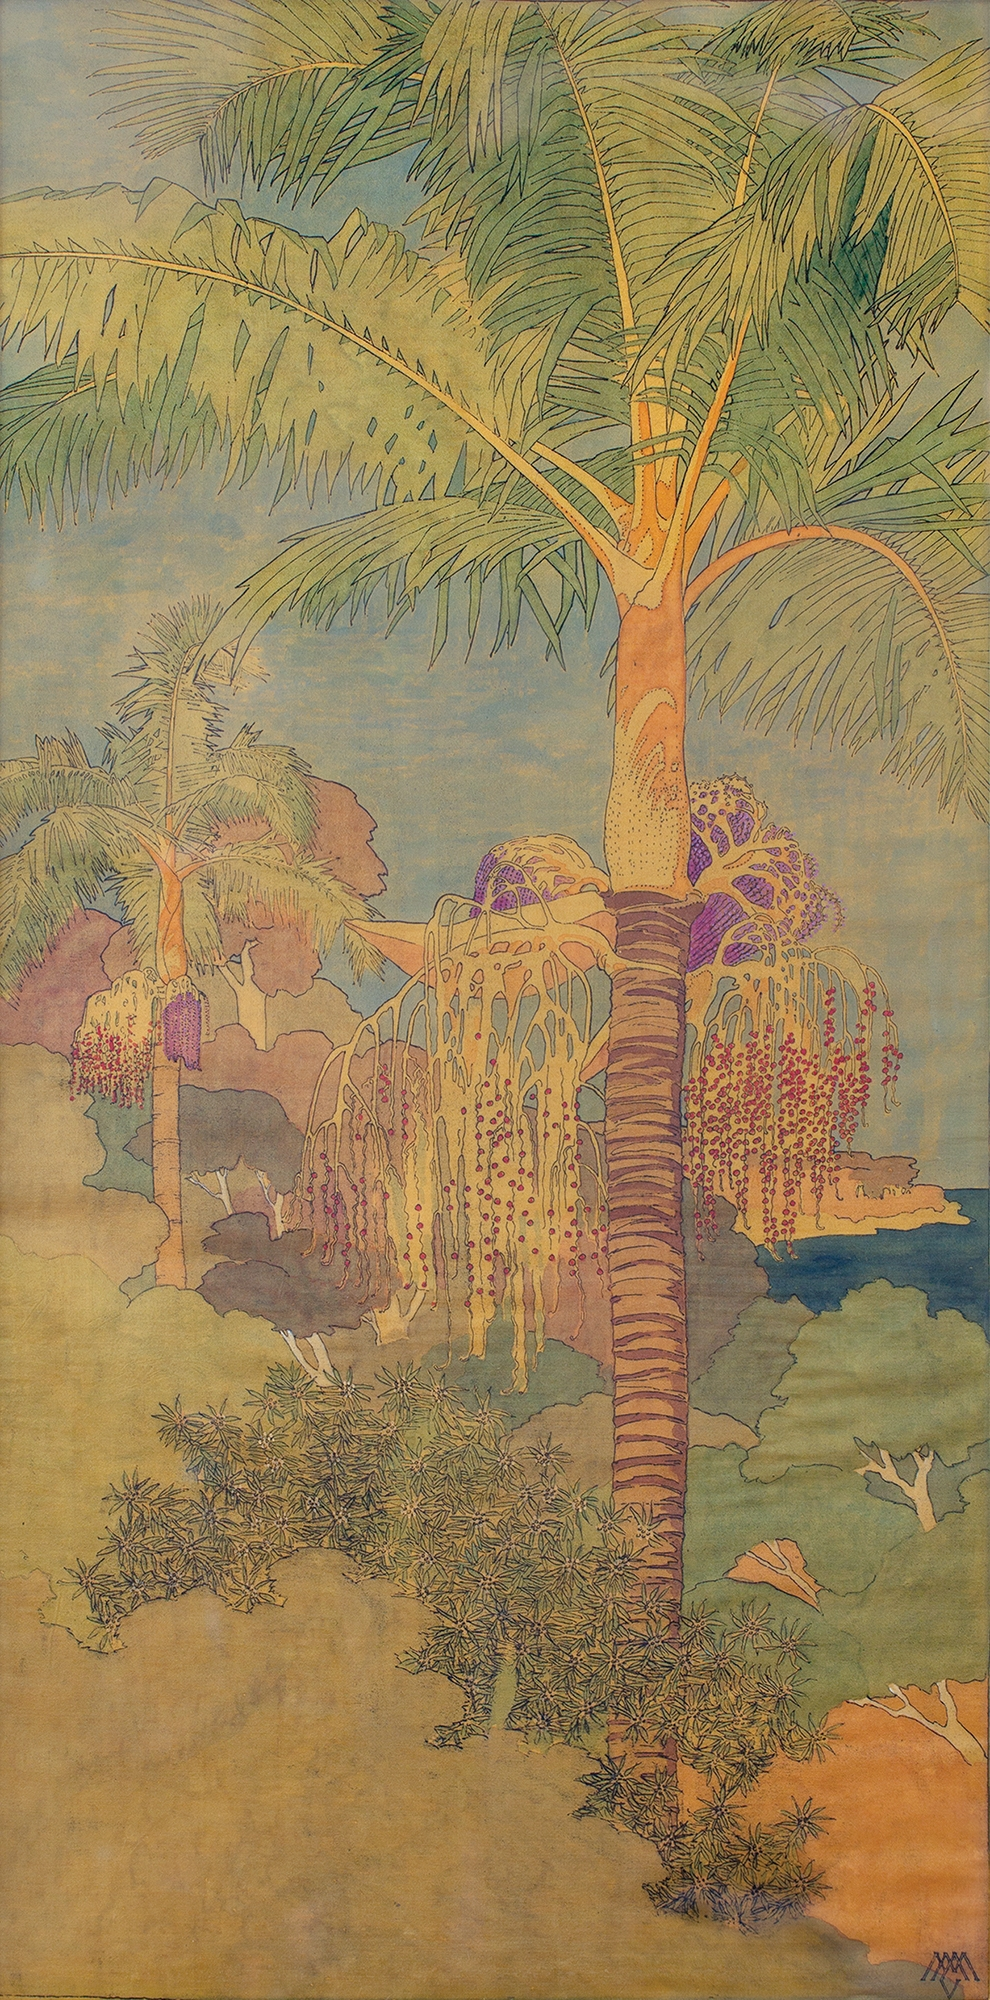 Tall painting of palm trees and surrounding landscape.